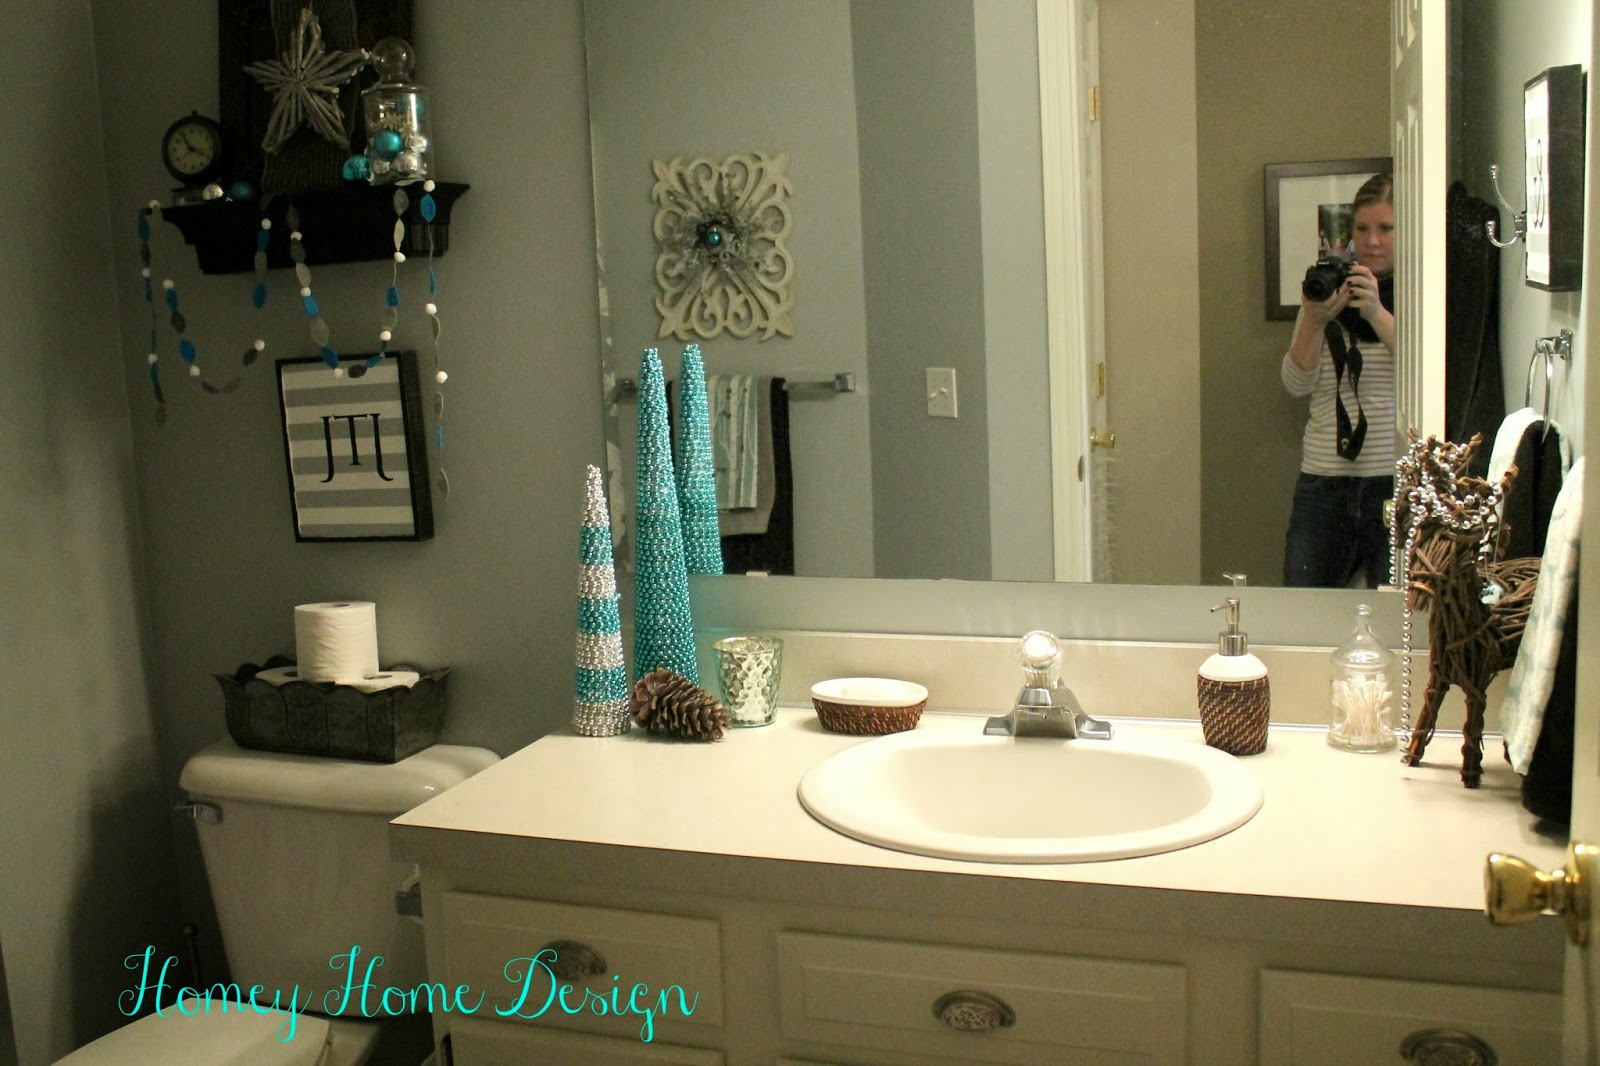 Homey home design bathroom christmas ideas for Home decor bathroom pictures